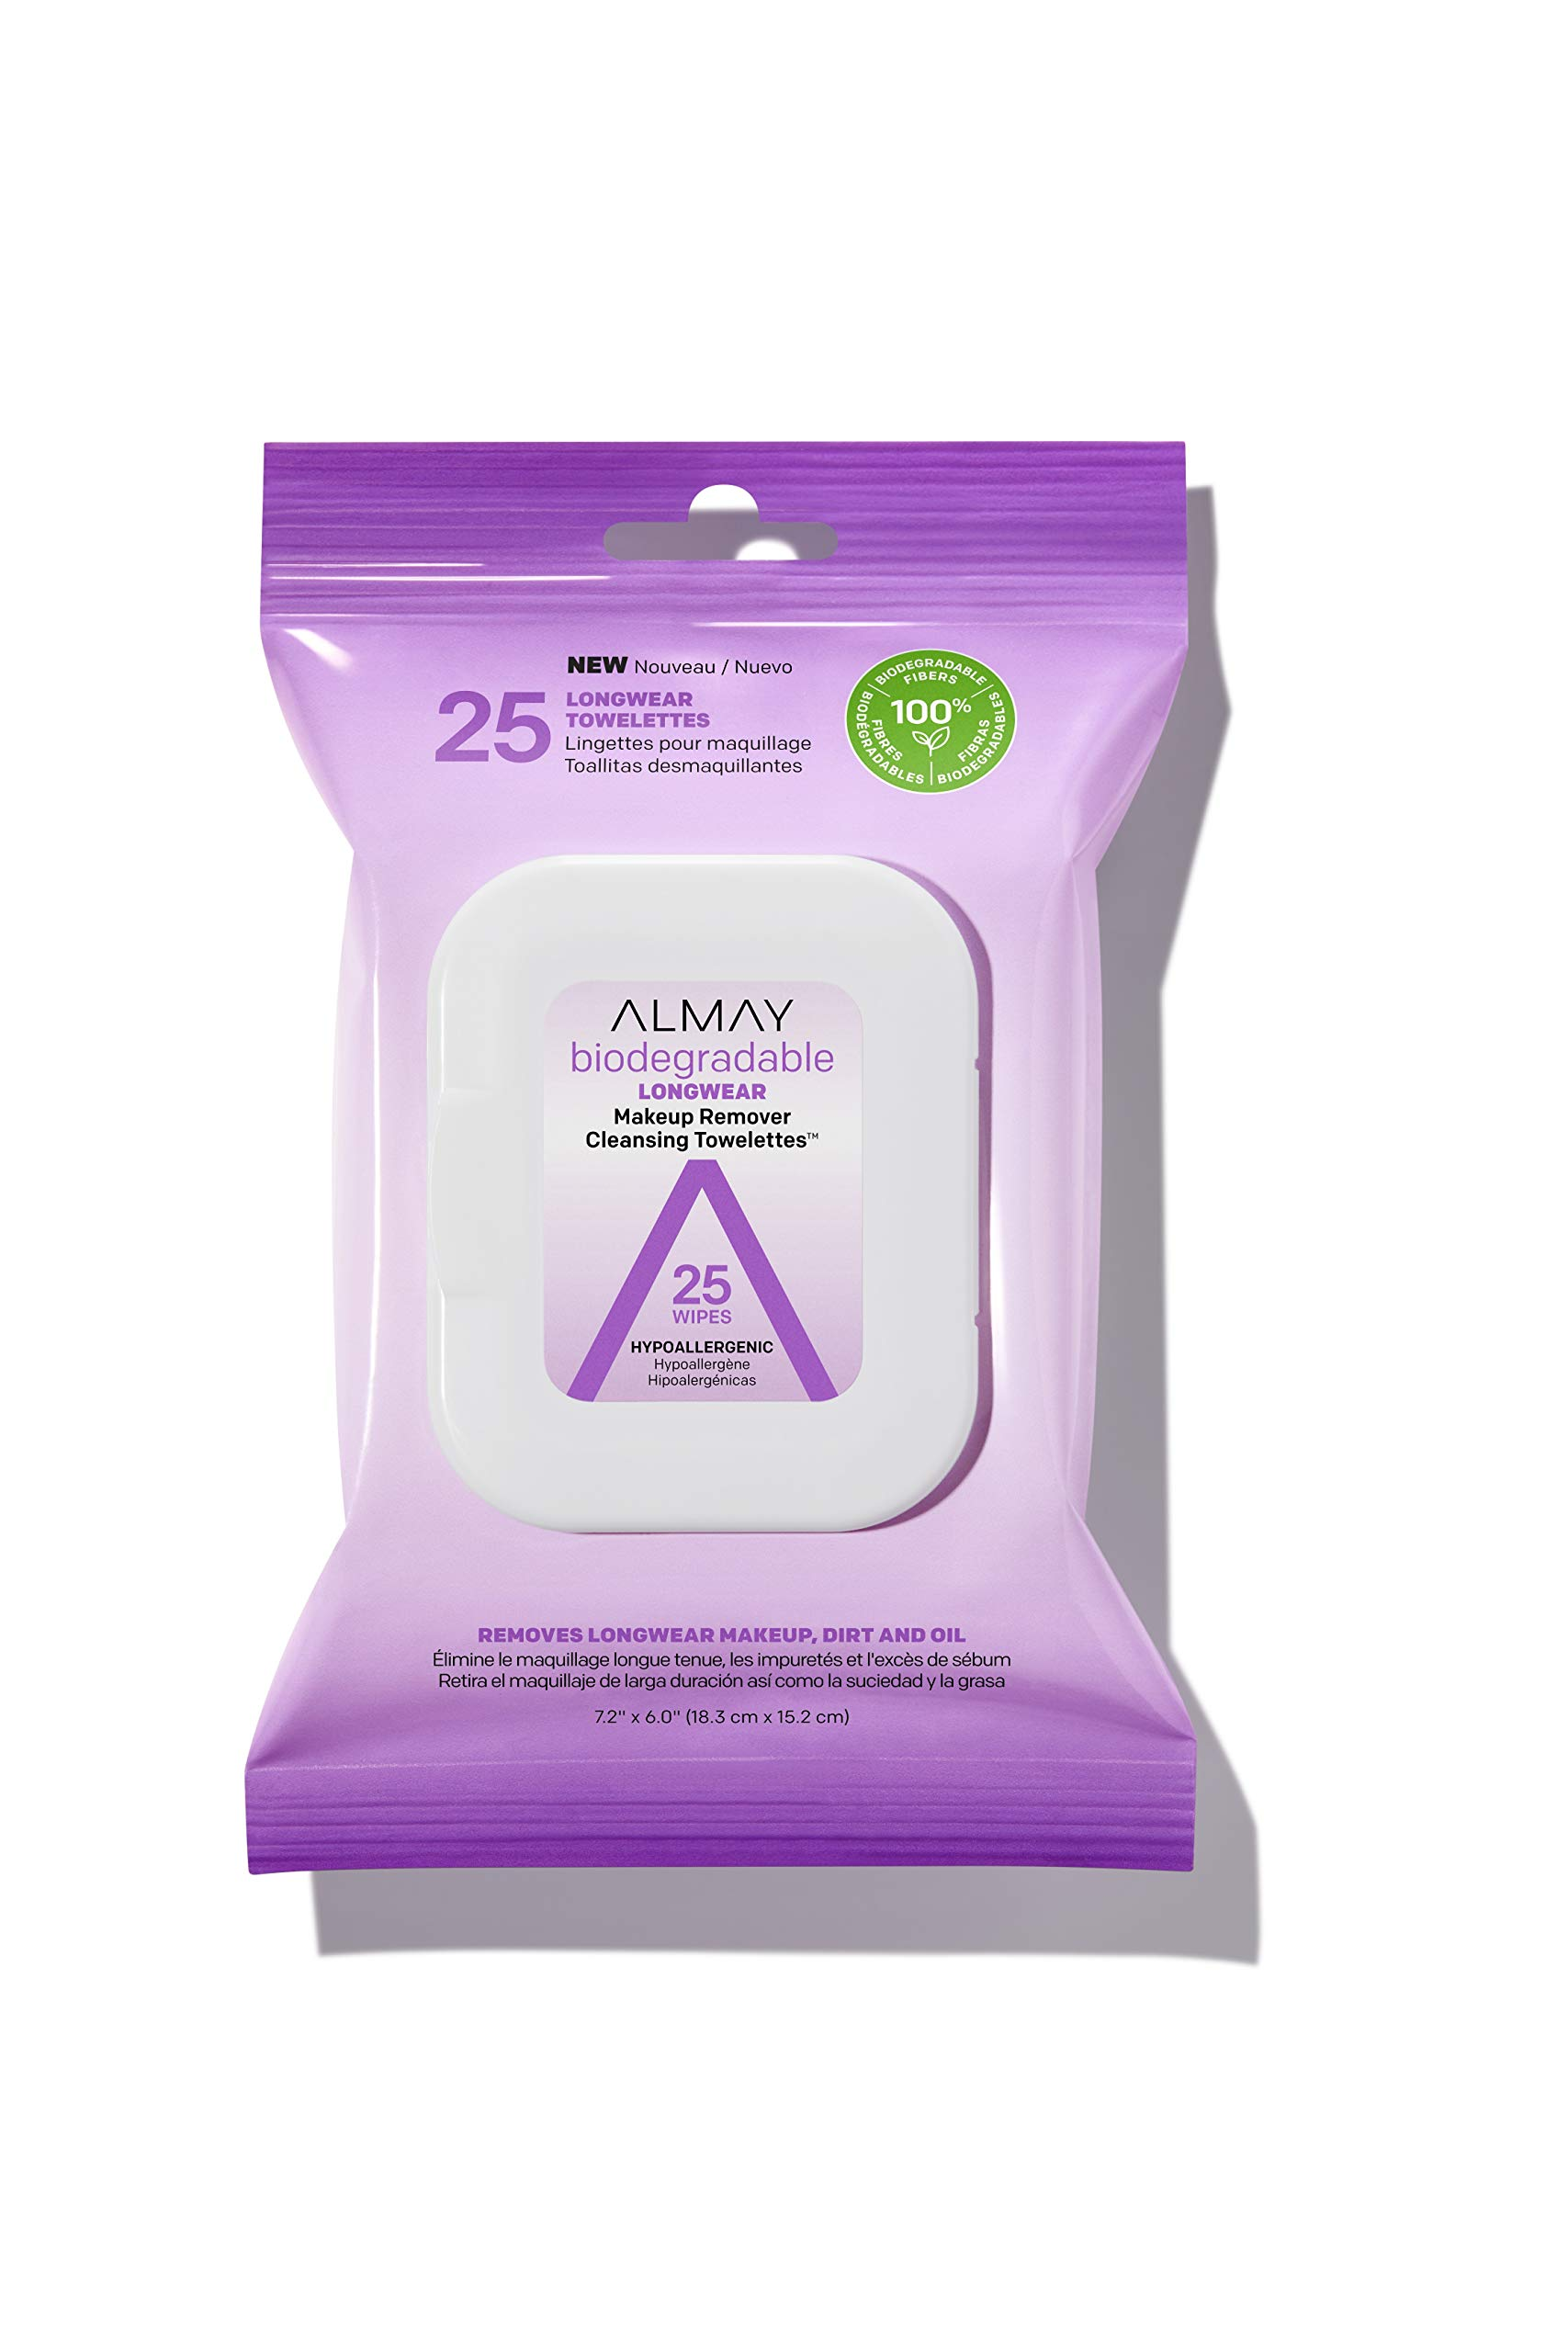 Almay - Almay Biodegradable Longwear Makeup Remover Cleansing Towelettes, Hypoallergenic, Cruelty Free, Fragrance free, Dermatologist Tested, 25 Makeup Remover Wipes